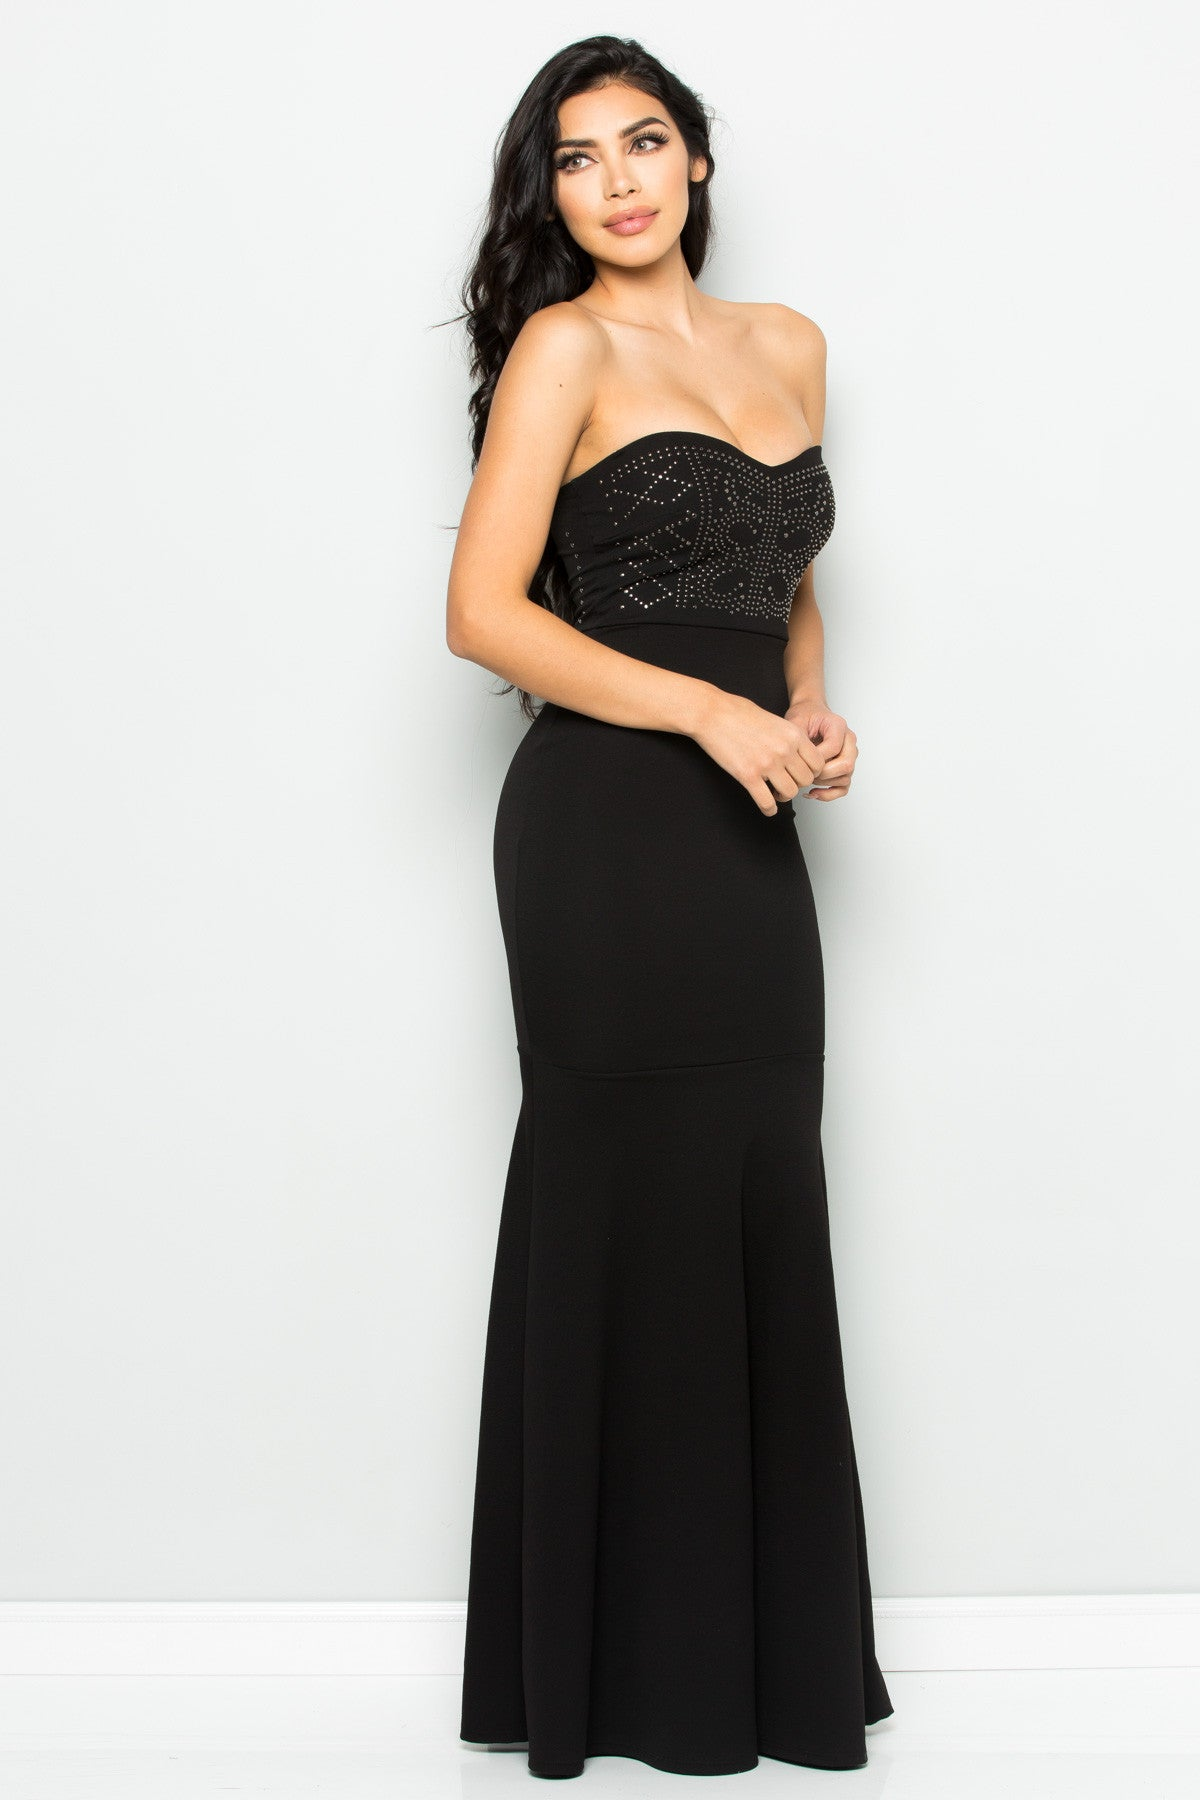 Beaded Sweetheart Mermaid Tail Gown in Black - Dresses - My Yuccie - 2